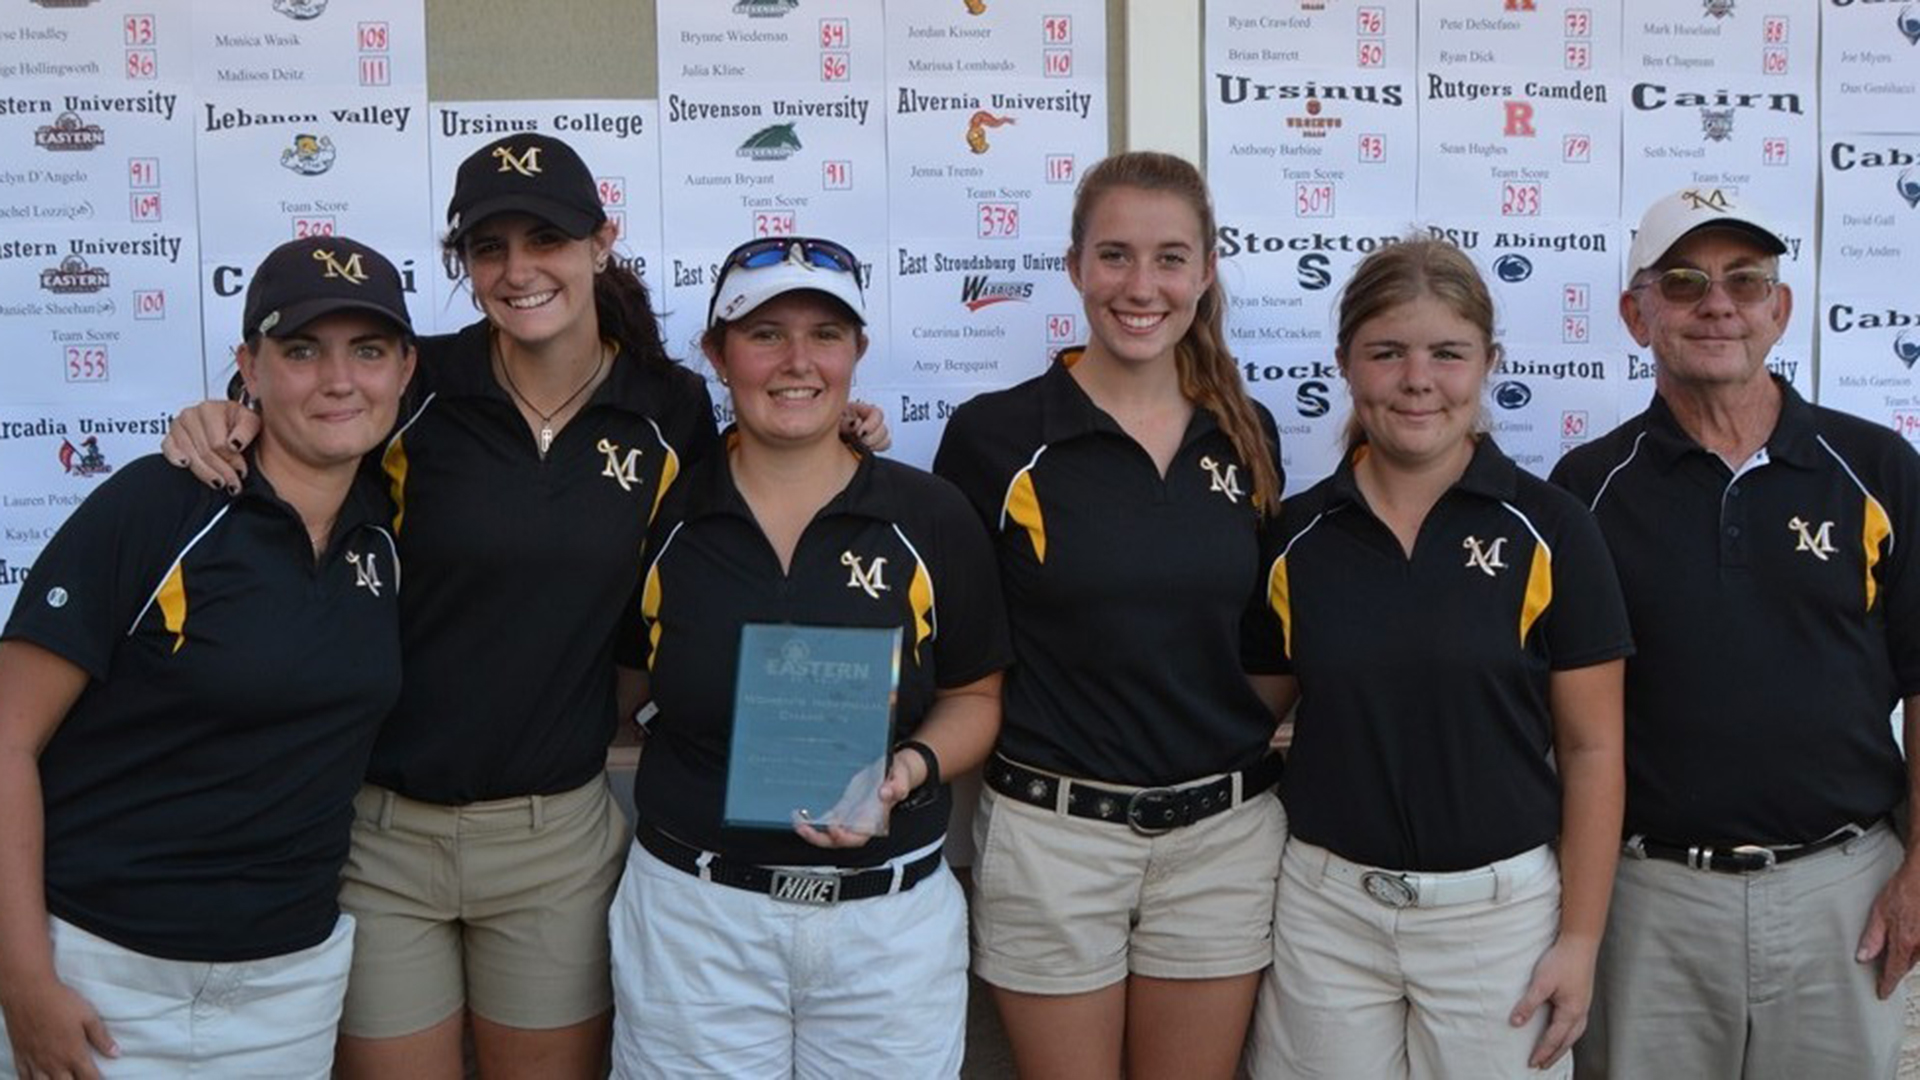 eastern_inv freed wins, team finishes second at eastern invitational,Eastern Invitational